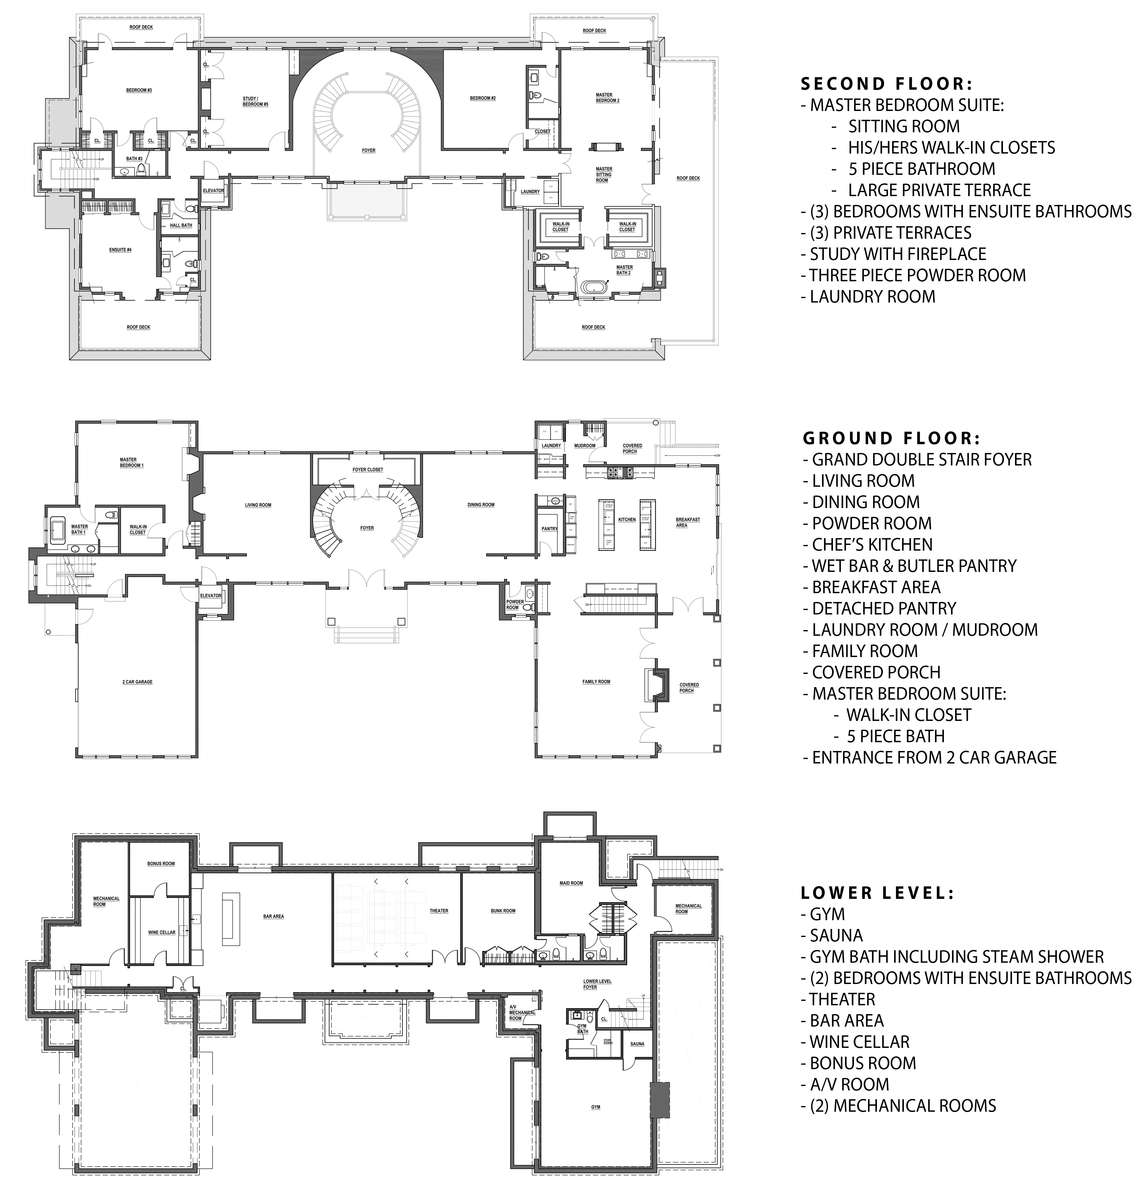 MAIN HOUSE FLOOR PLANS